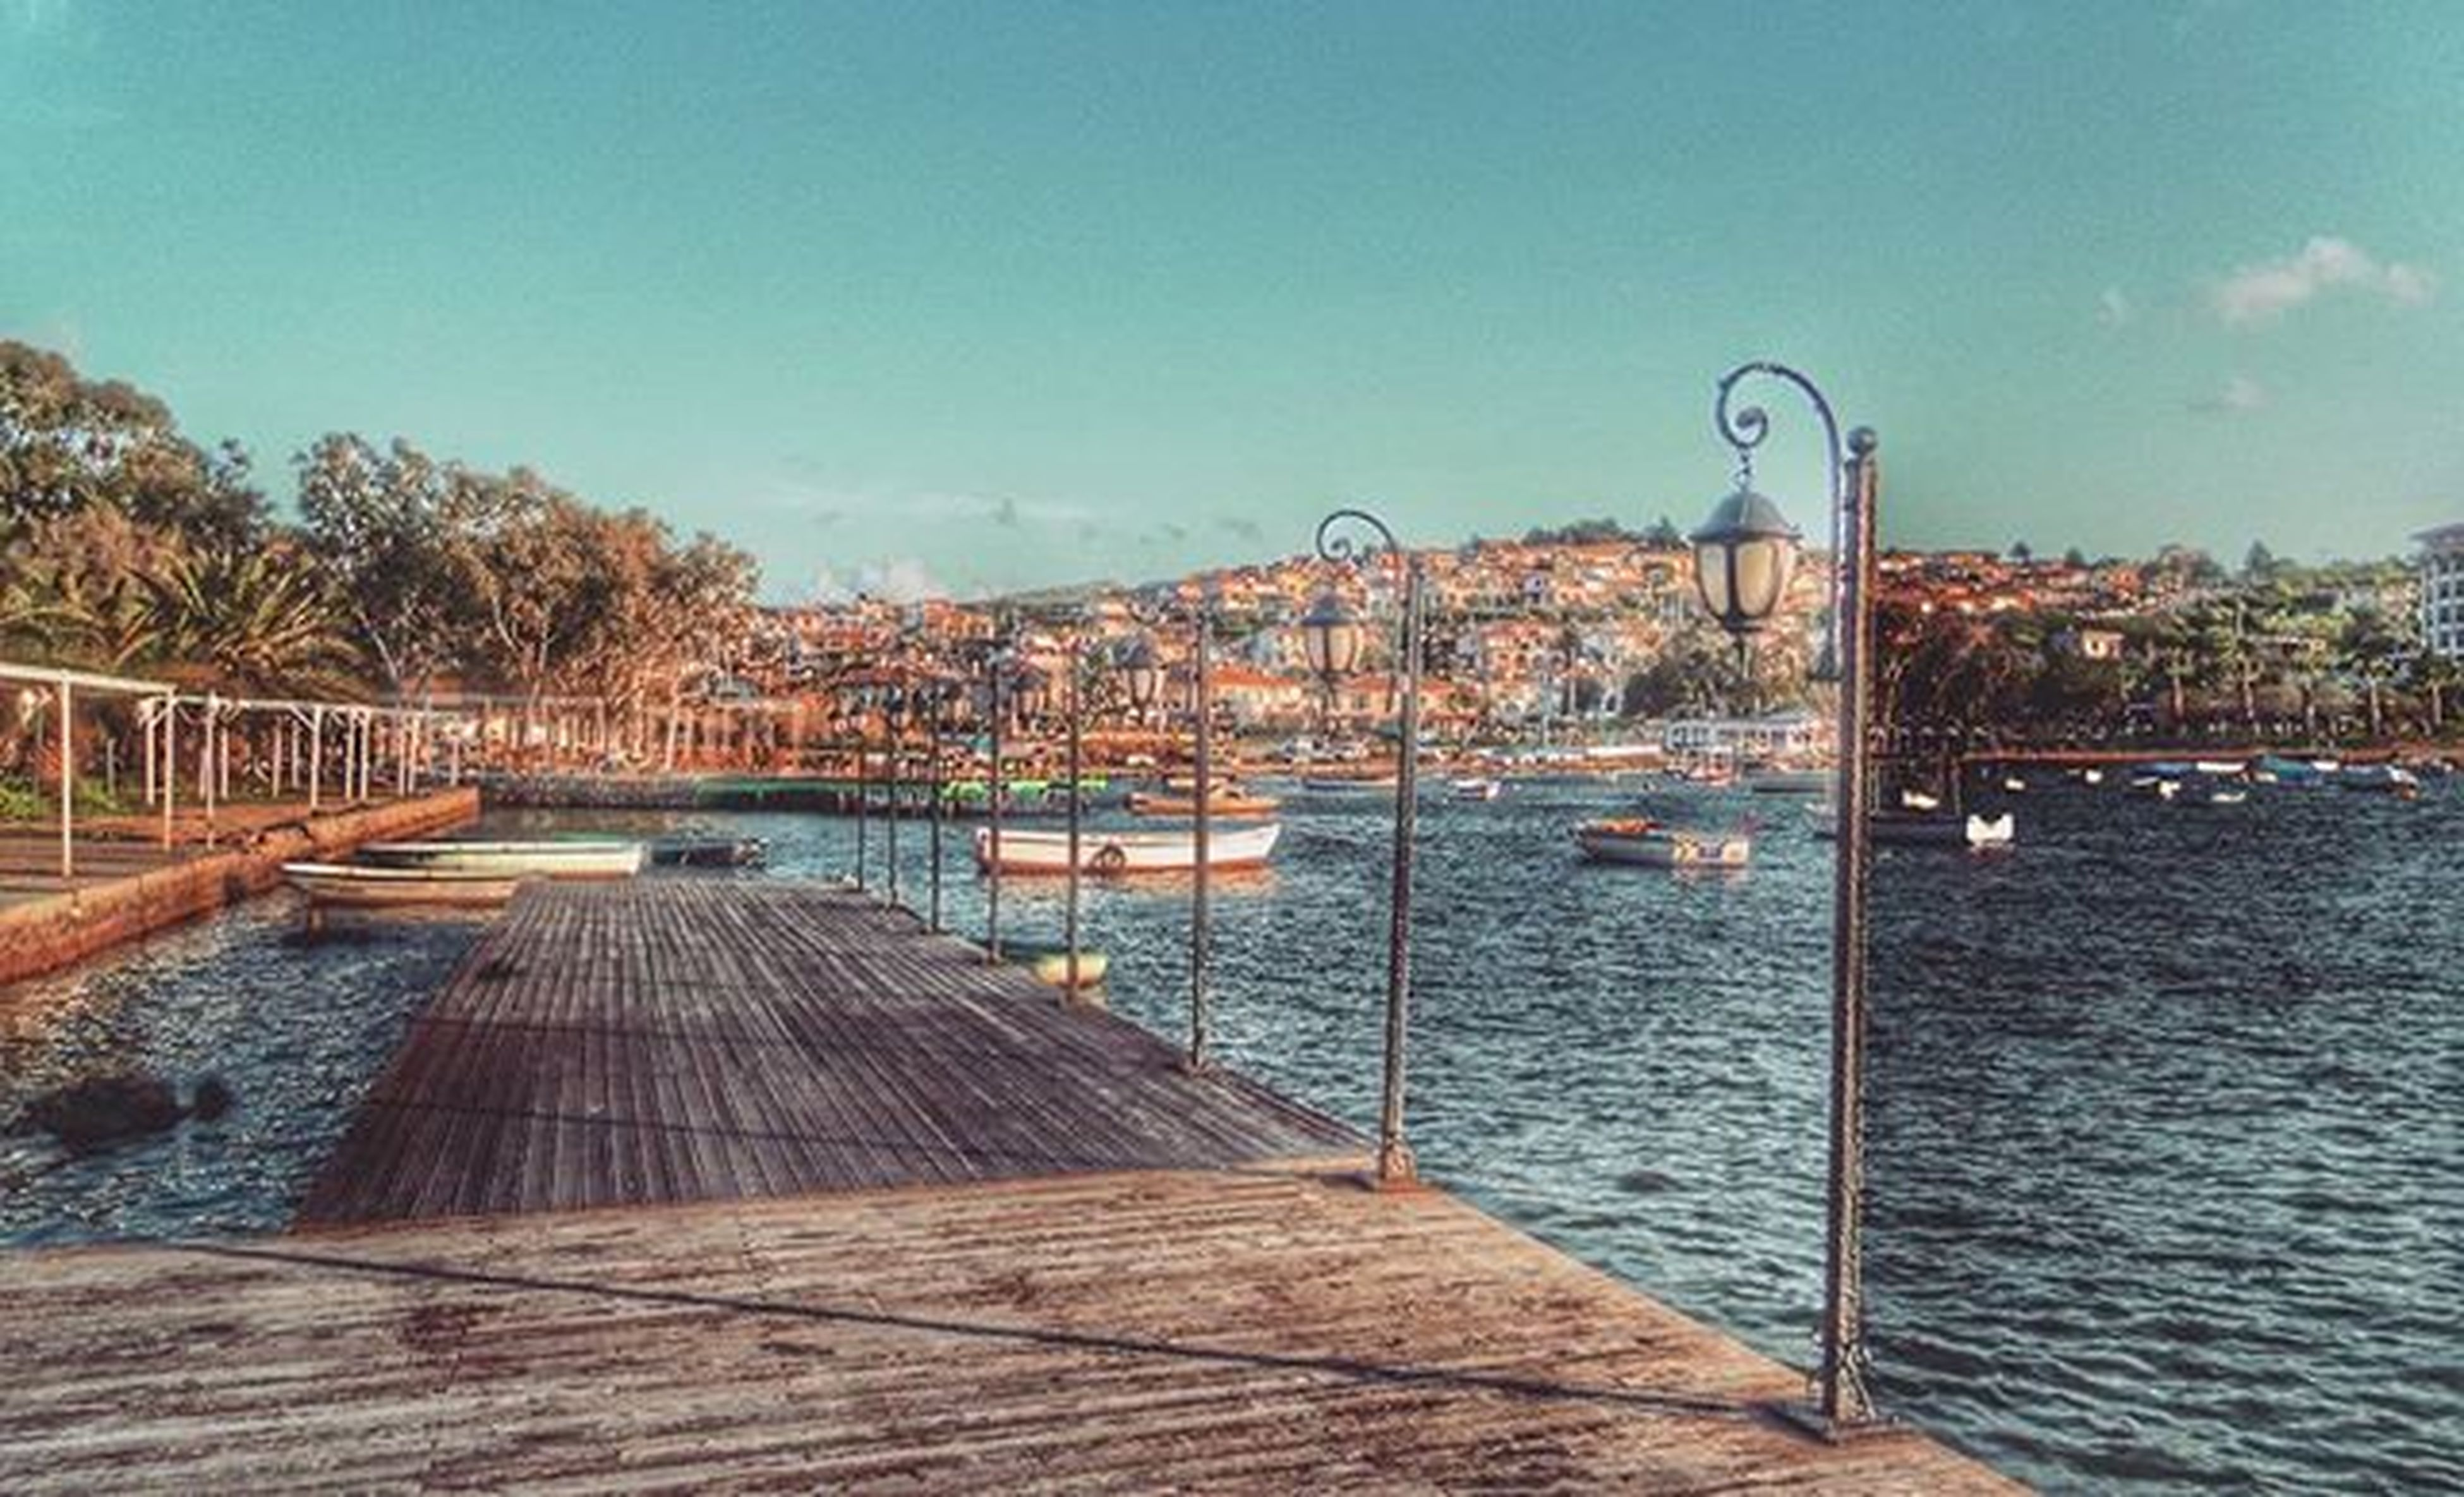 water, built structure, pier, clear sky, sky, railing, architecture, transportation, blue, river, tranquility, wood - material, tranquil scene, the way forward, lake, nature, rippled, day, connection, tree